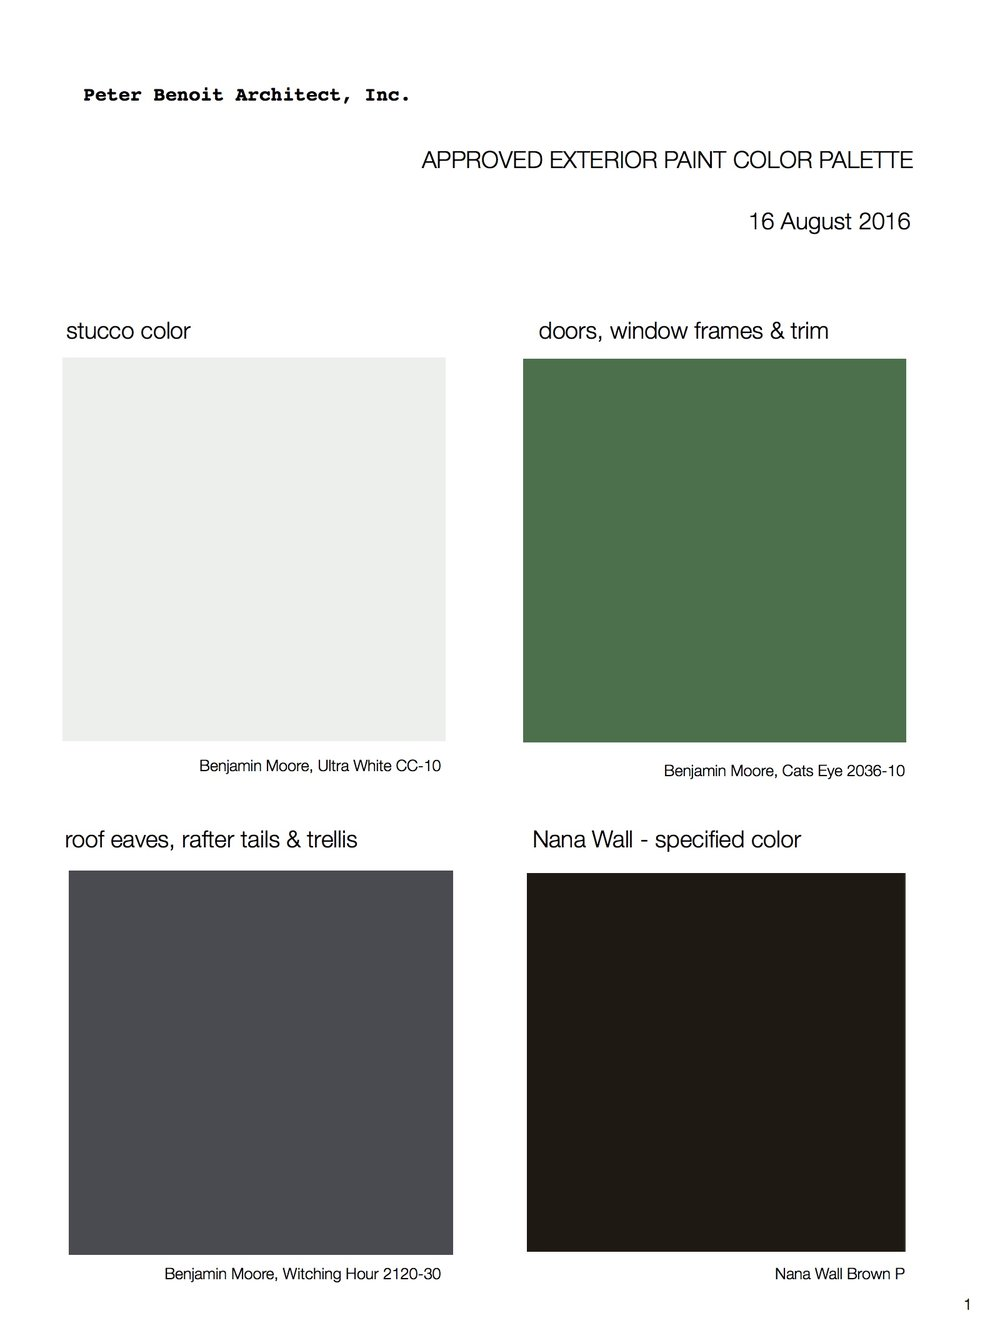 1608167 Rev Exterior Paint Color palette to Owners (approved).jpg